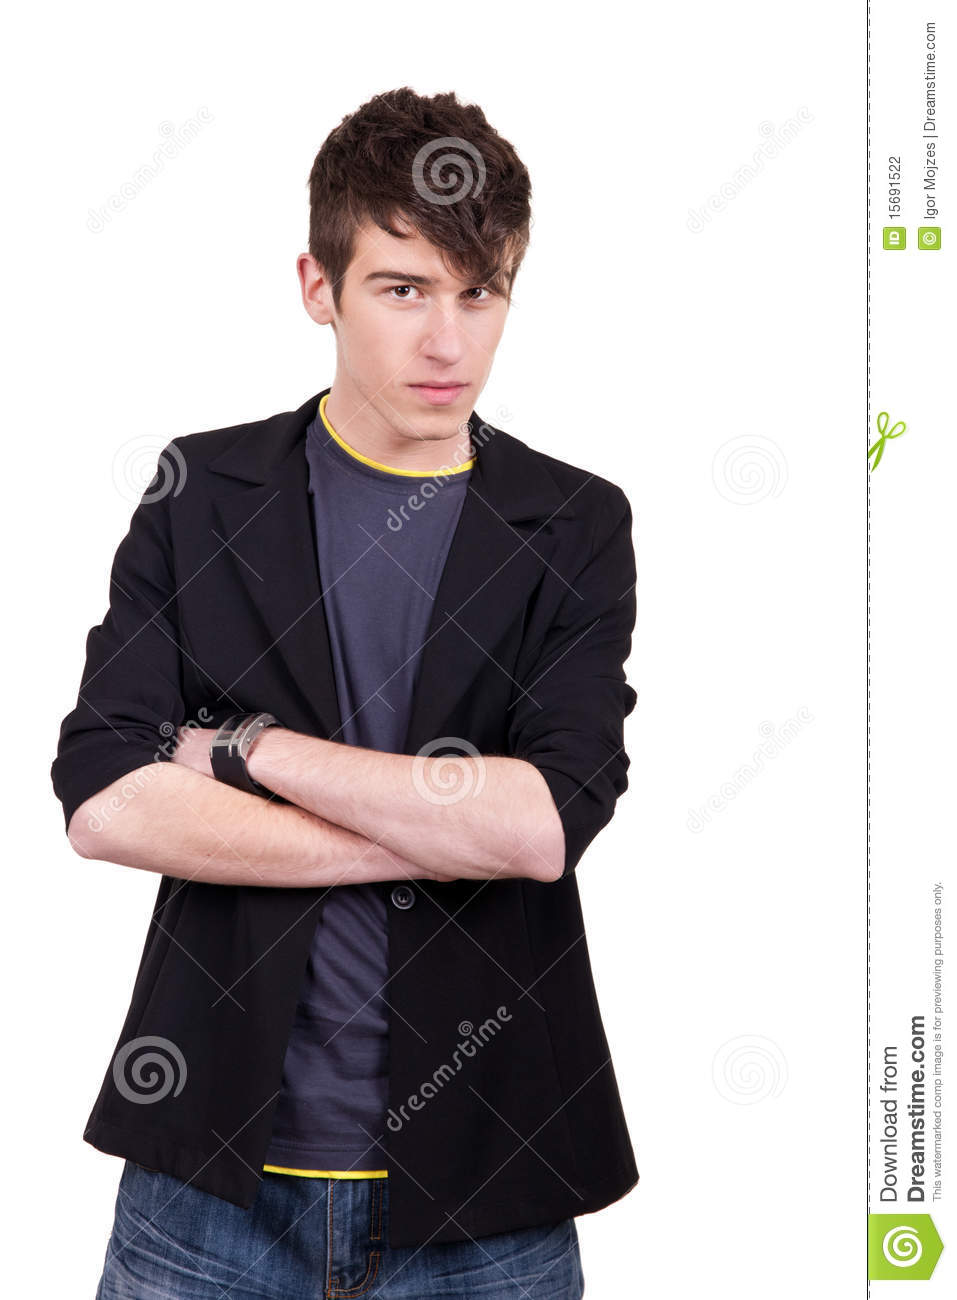 Urban Male Teenager Stock Photography